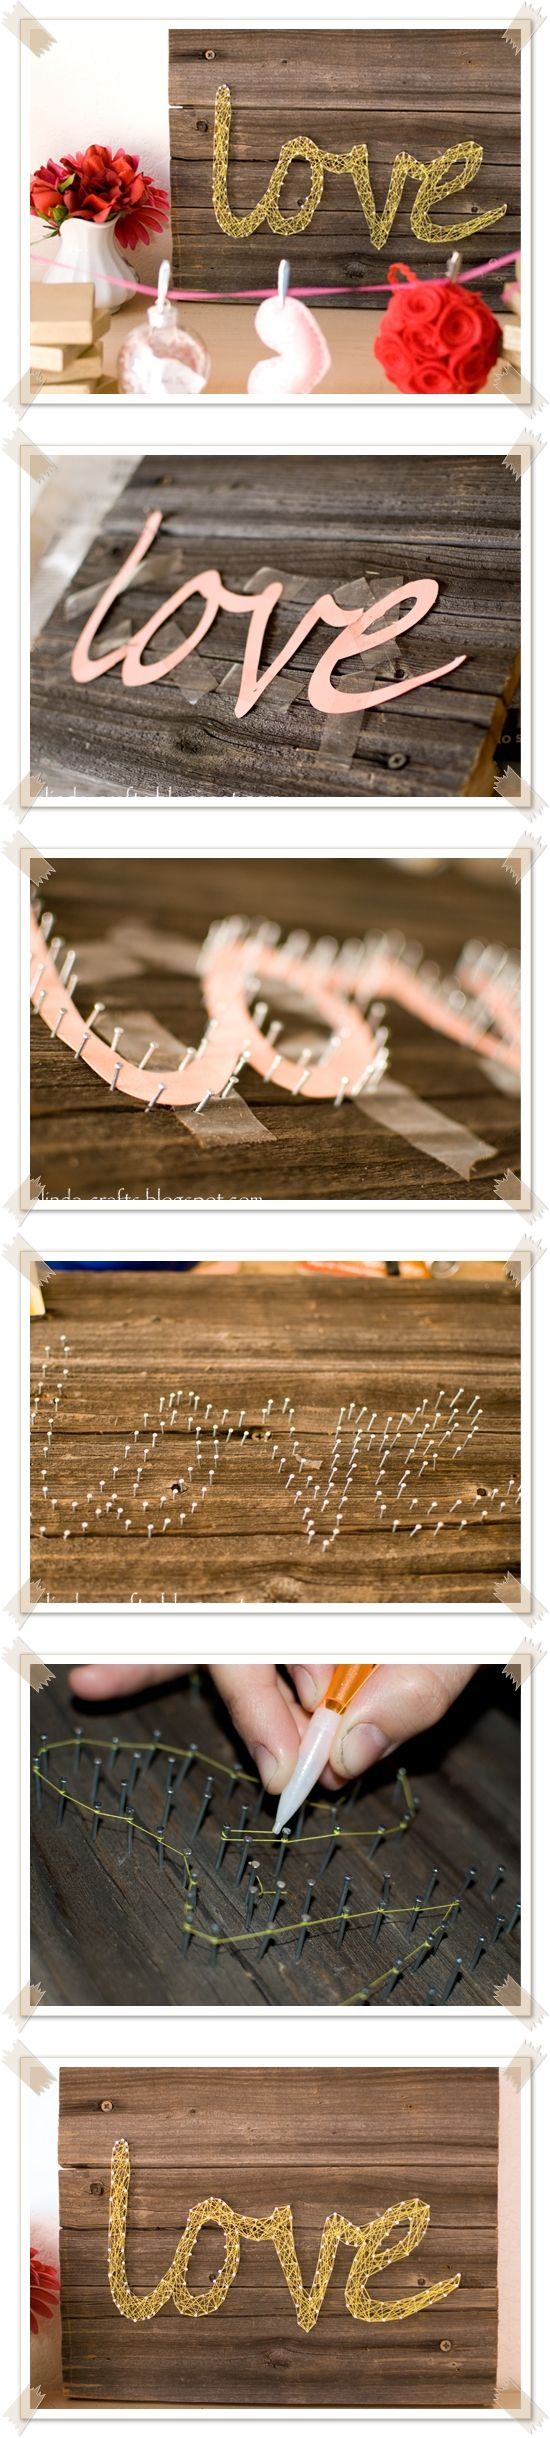 String Wall Art for Valentines Day : DIY and Craft Tutorials